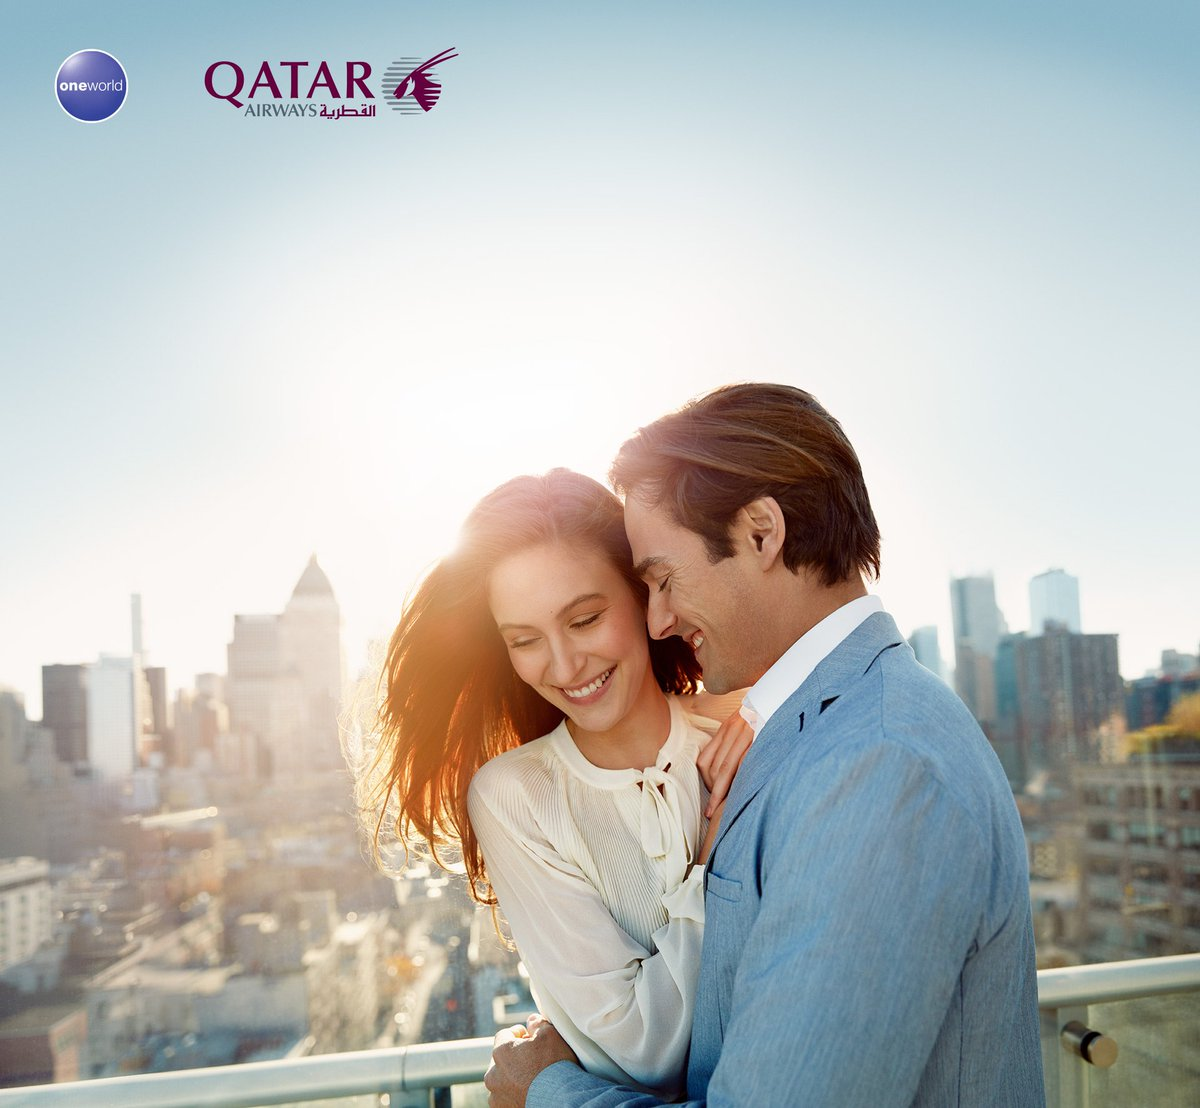 This Valentines enjoy a trip for two with our companion offers- up to 50% off. Book by 11Feb